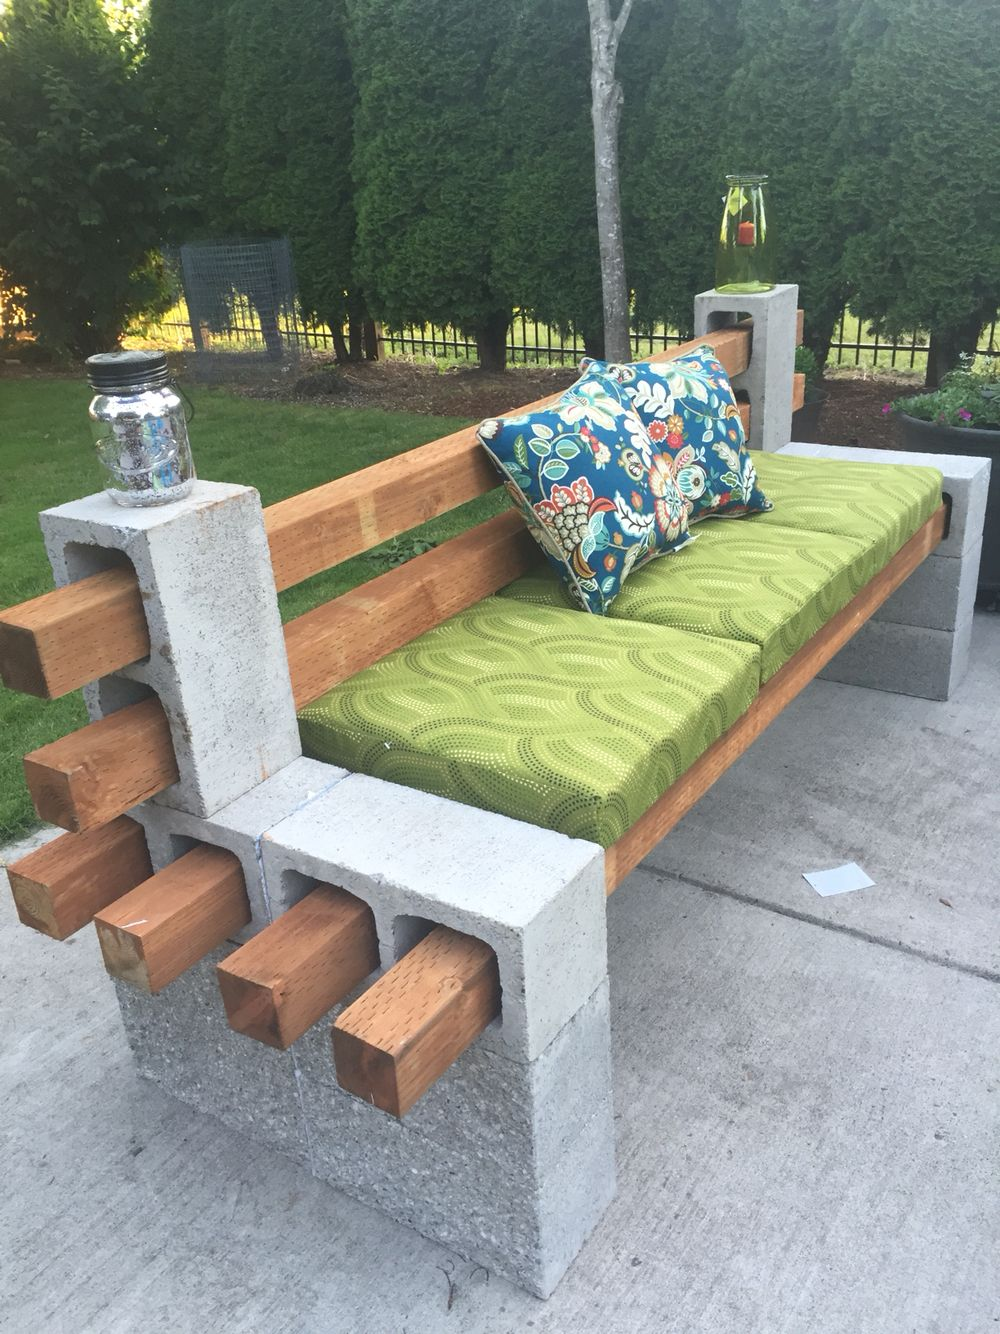 13 Diy Patio Furniture Ideas That Are Simple And Extra Seating Idea For Parties Too